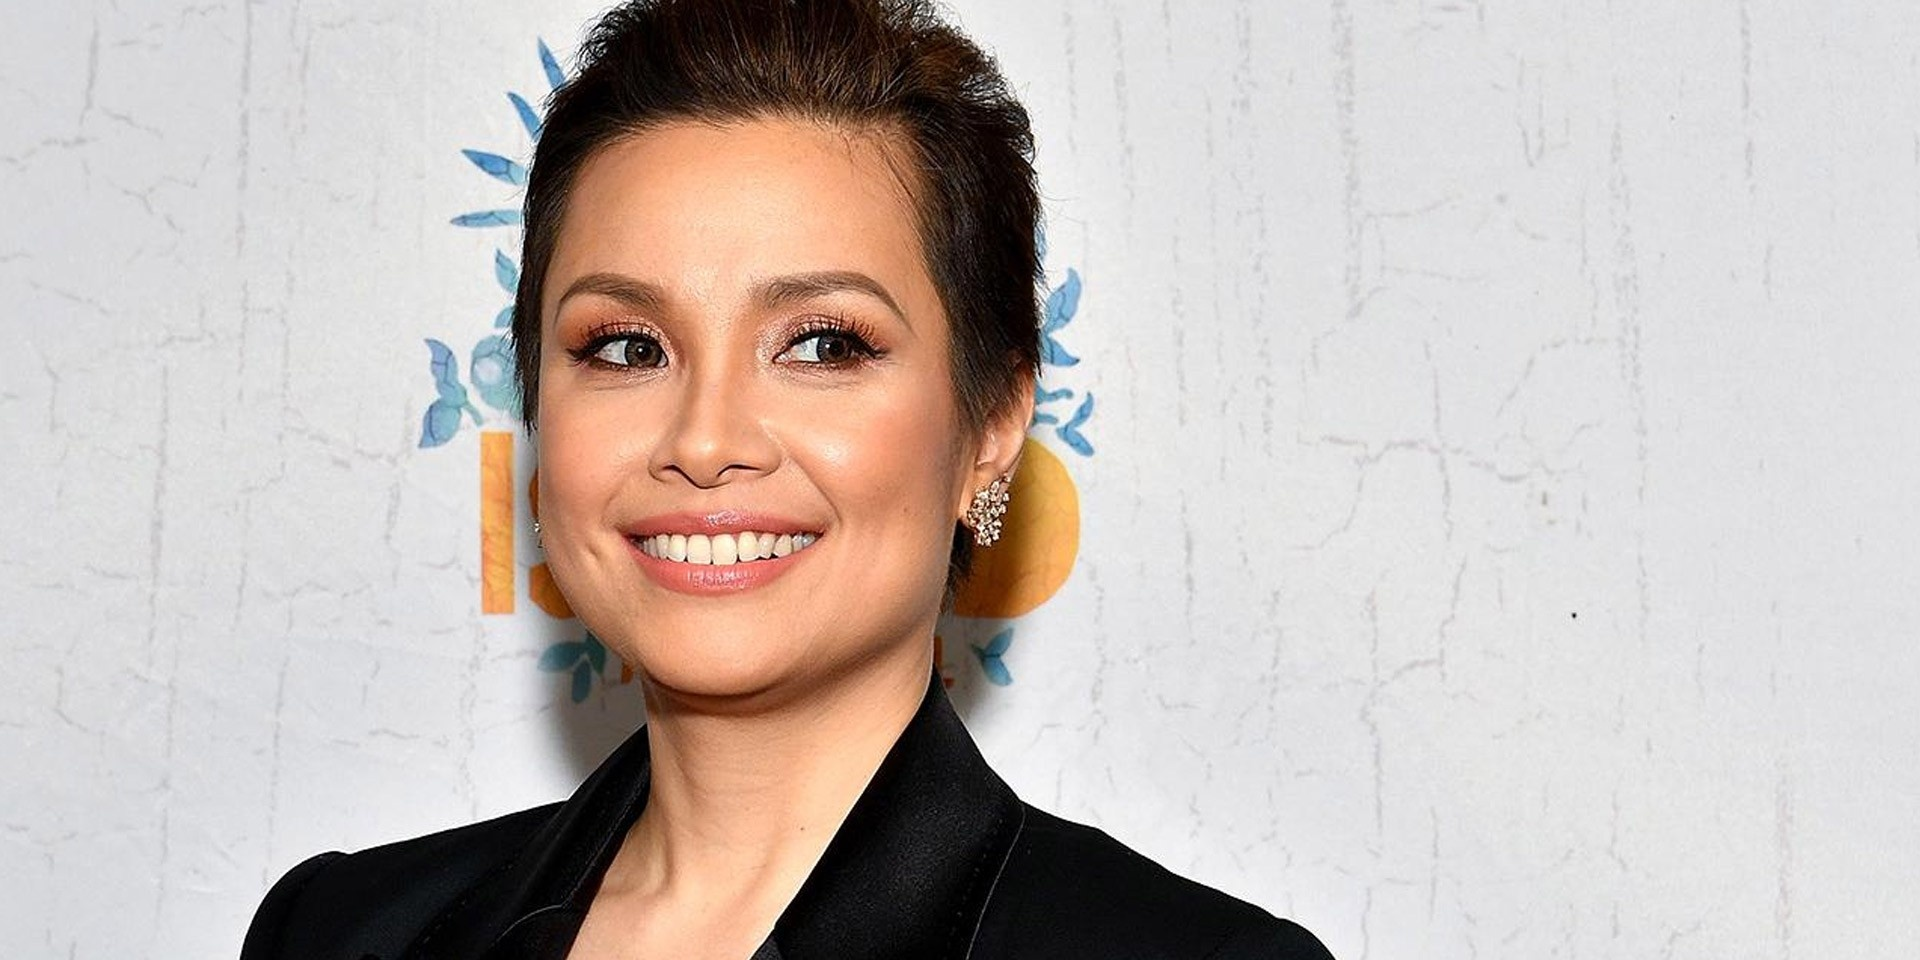 Lea Salonga is heading to Hong Kong, Singapore, U.K., U.S., and more on The Human Heart Tour